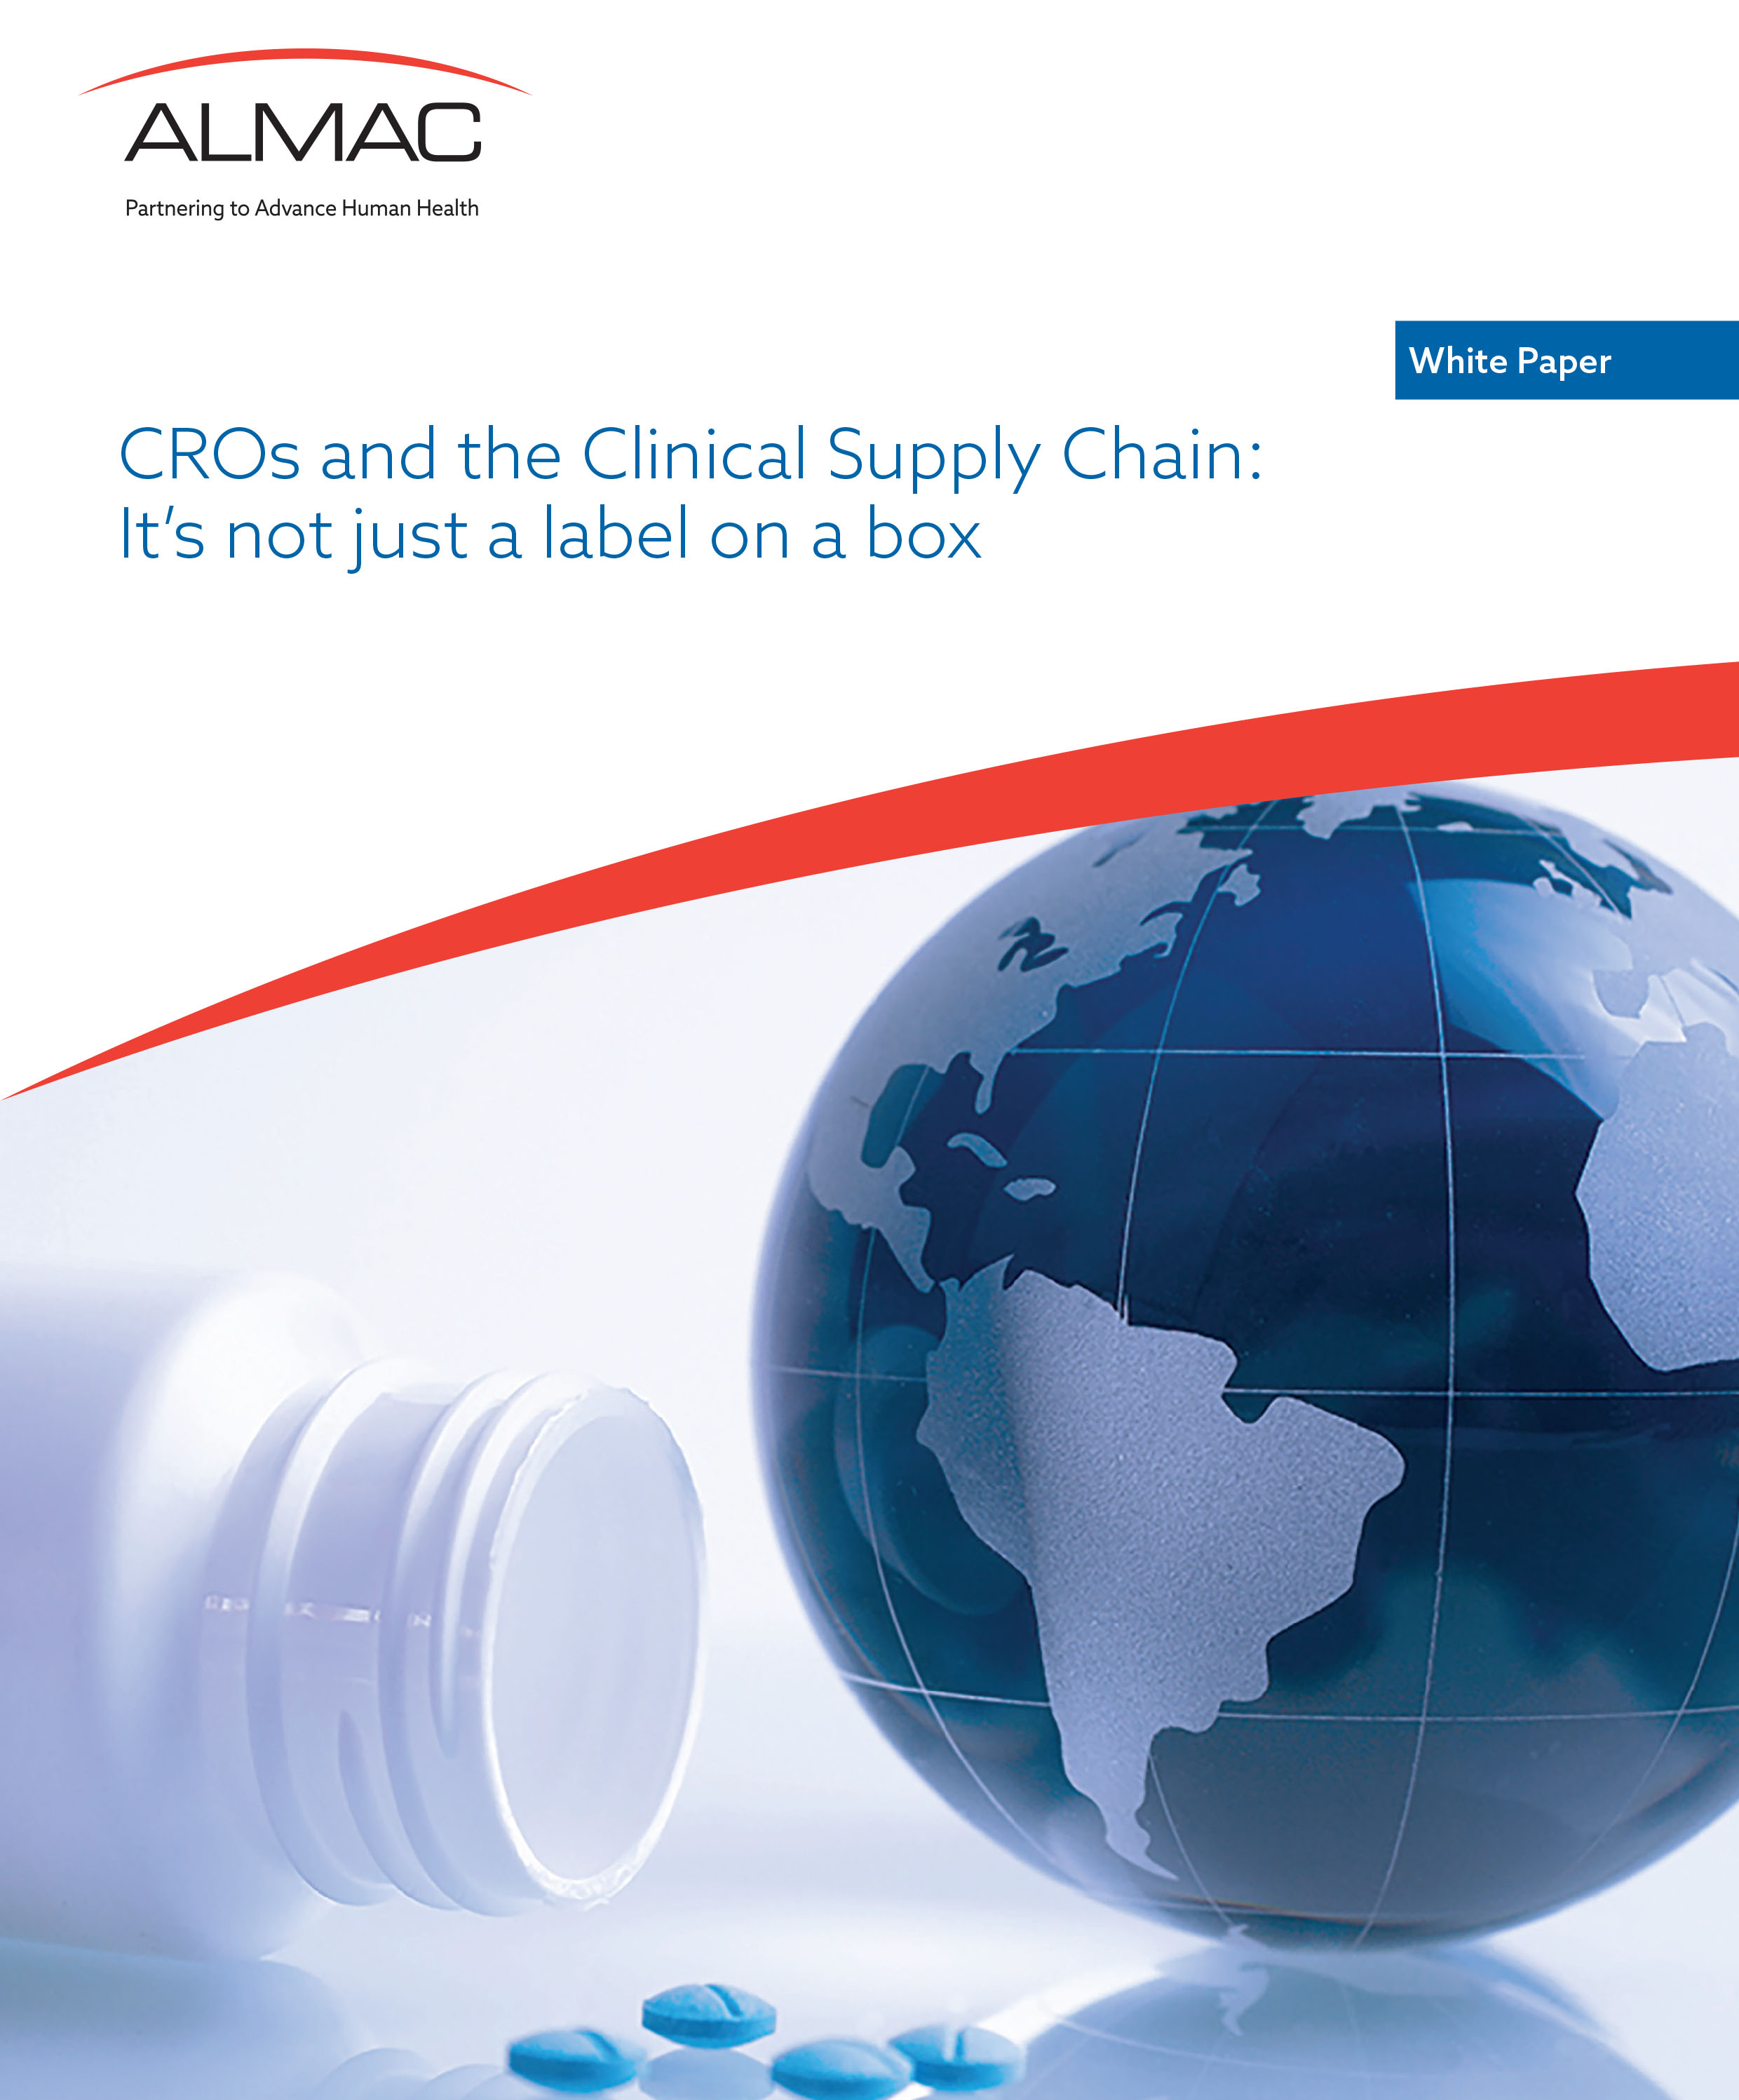 CROs and Clinical Supply Chain: It's Not Just A Label On A Box